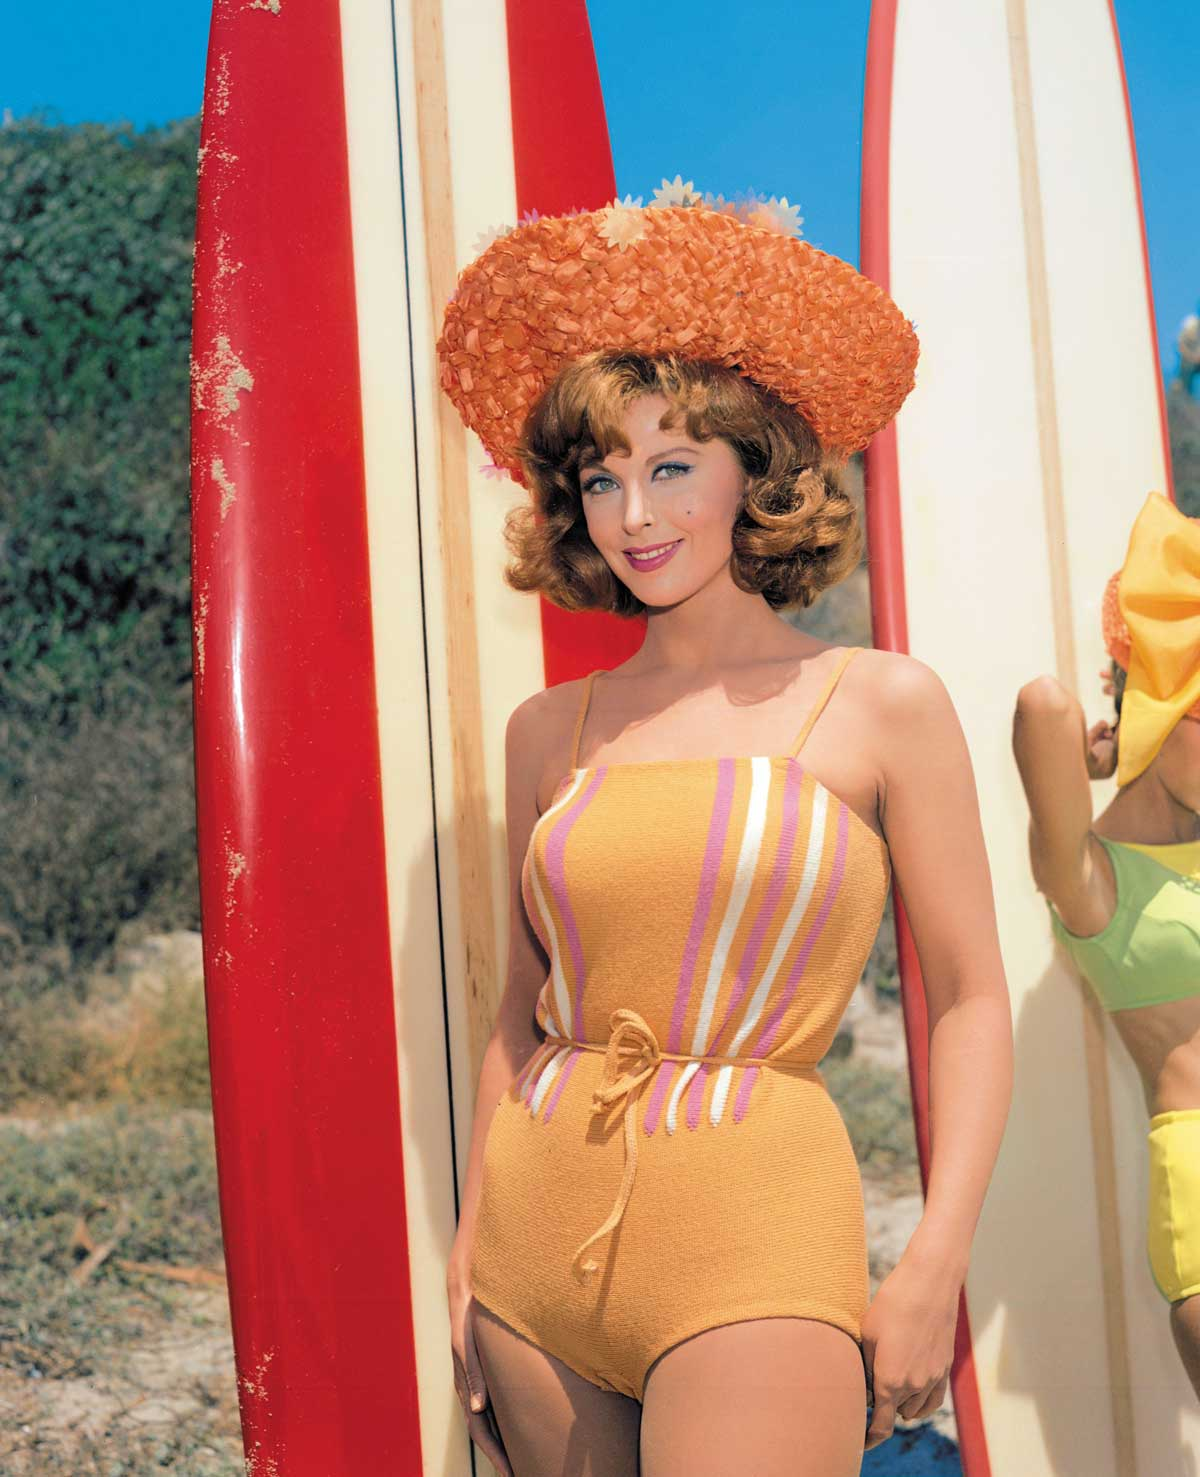 Tina-Louise-as-Topaz-McQueen-in-For-Those-Who-Think-Young,-1964